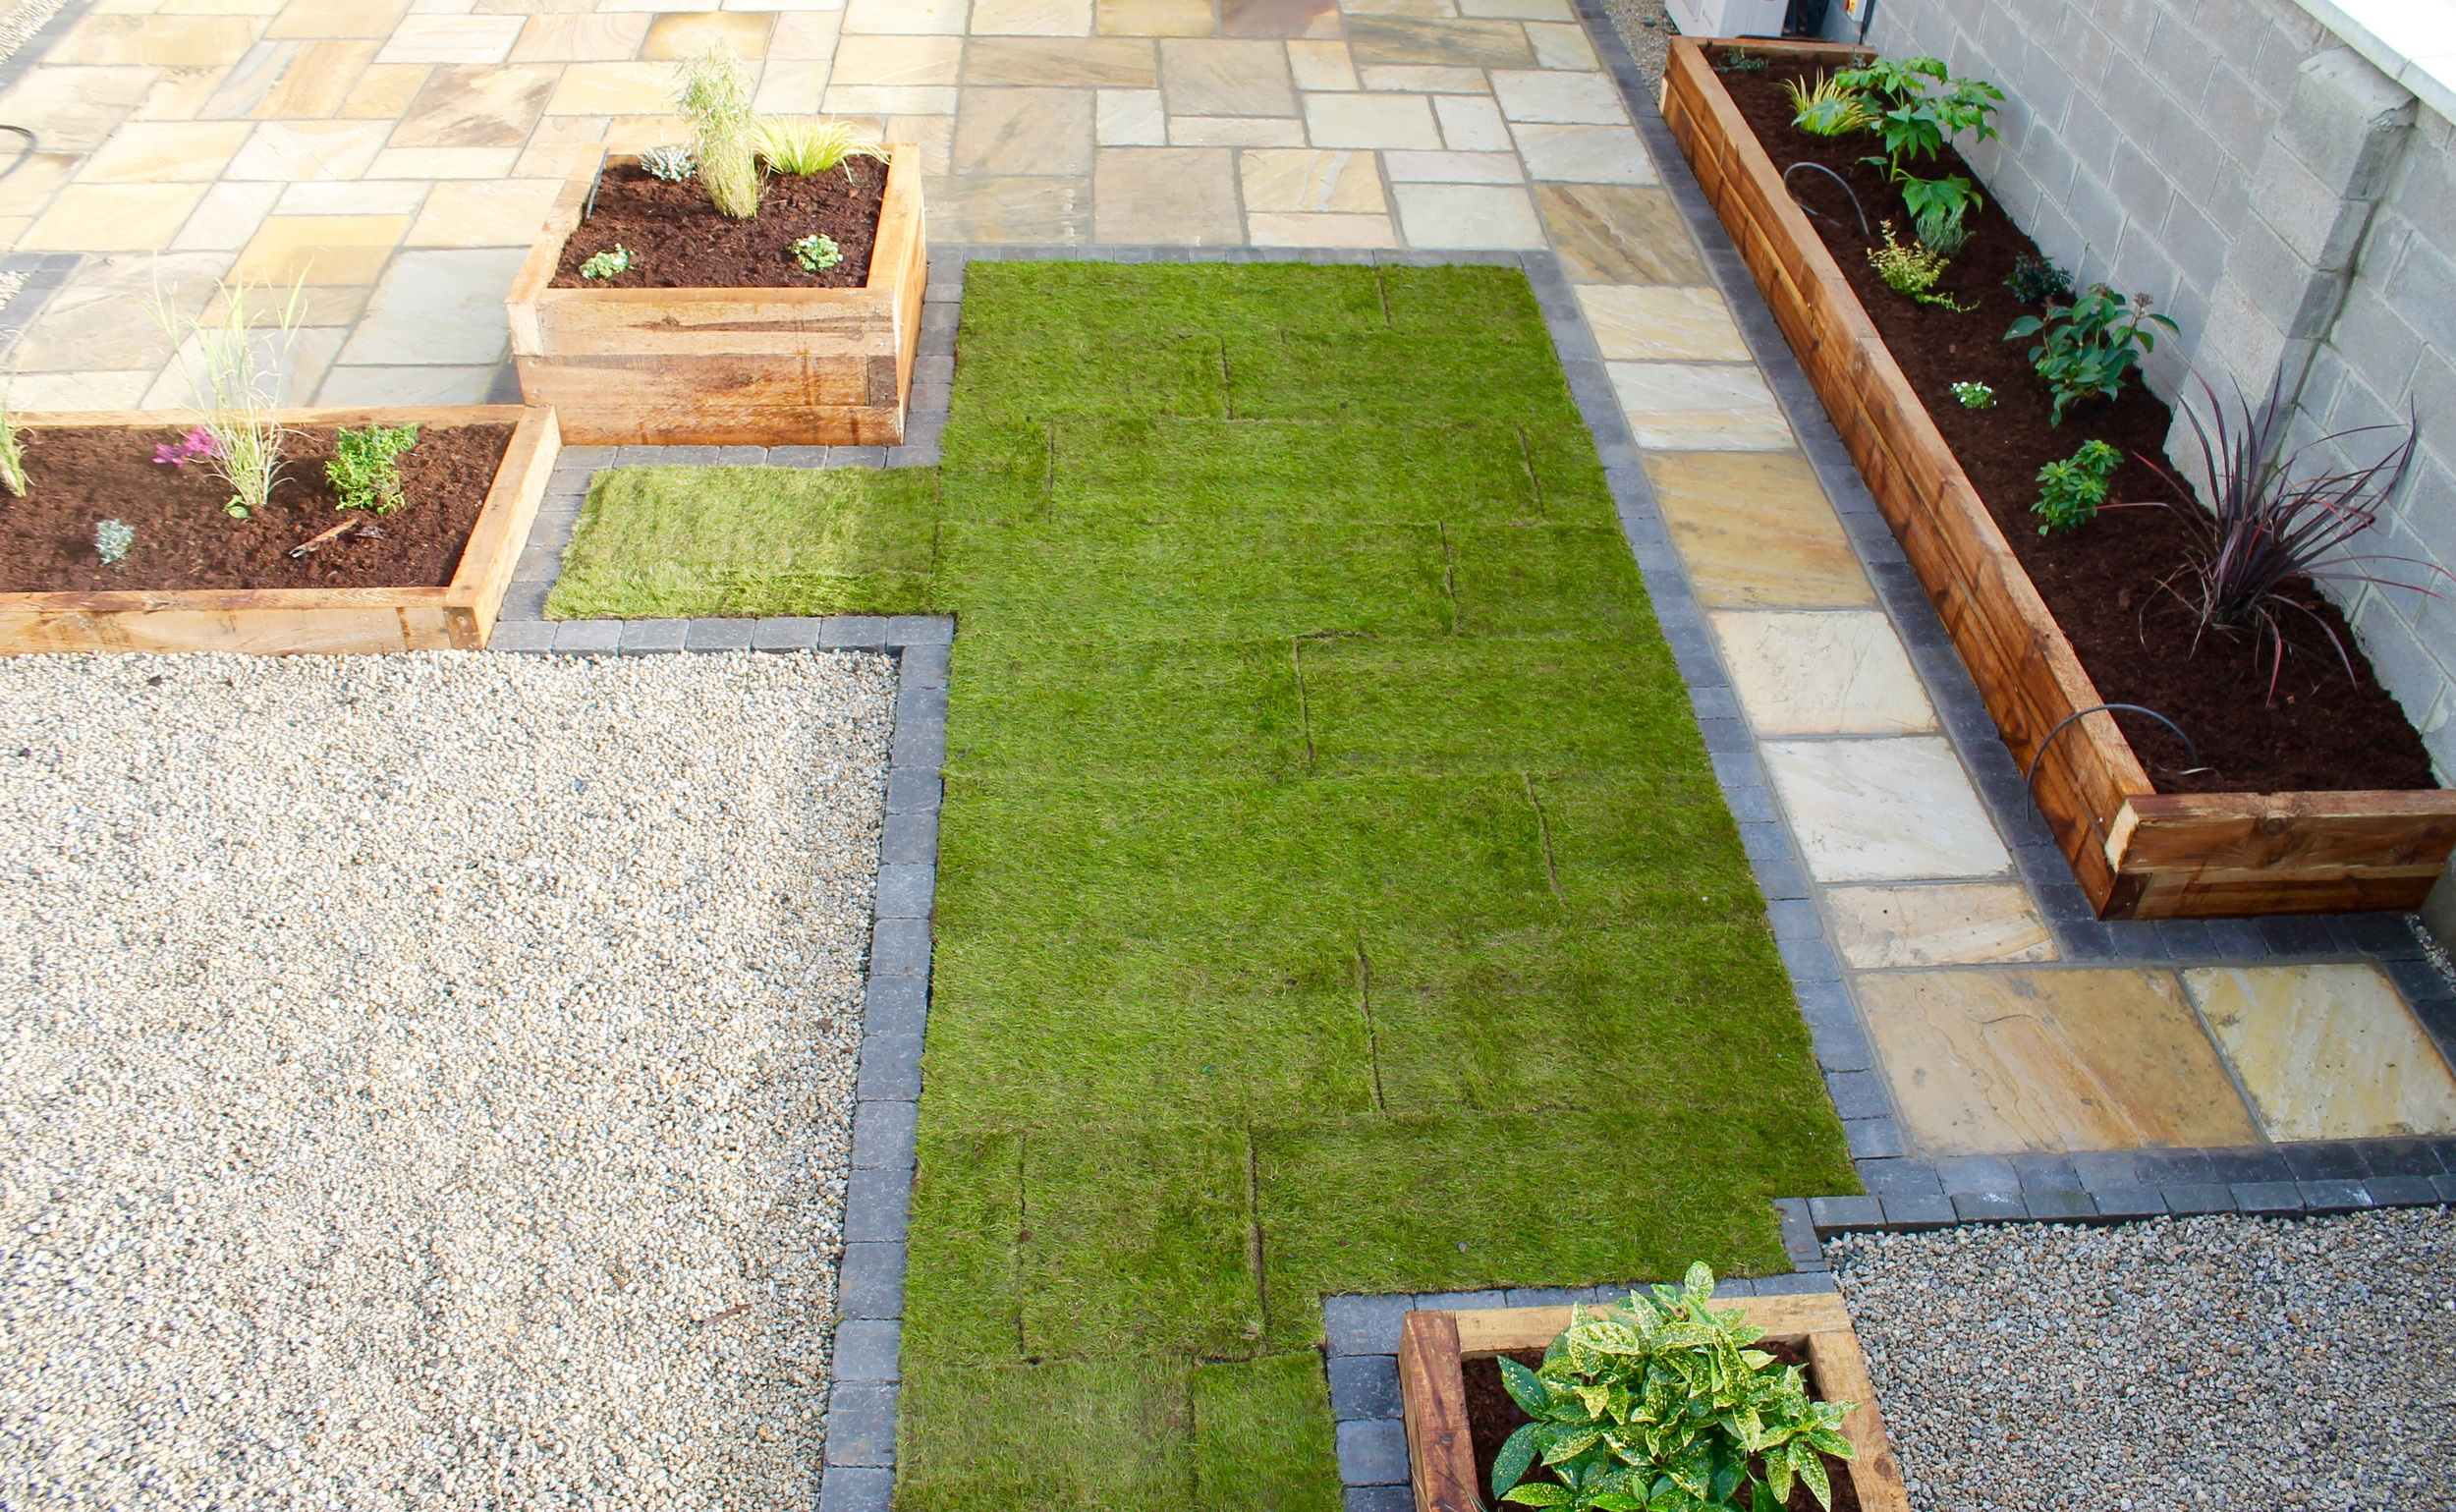 New Roll out Lawn with Carcoal brick edge,raised new sleeper beds with mood lighting and Sandstone Patio.